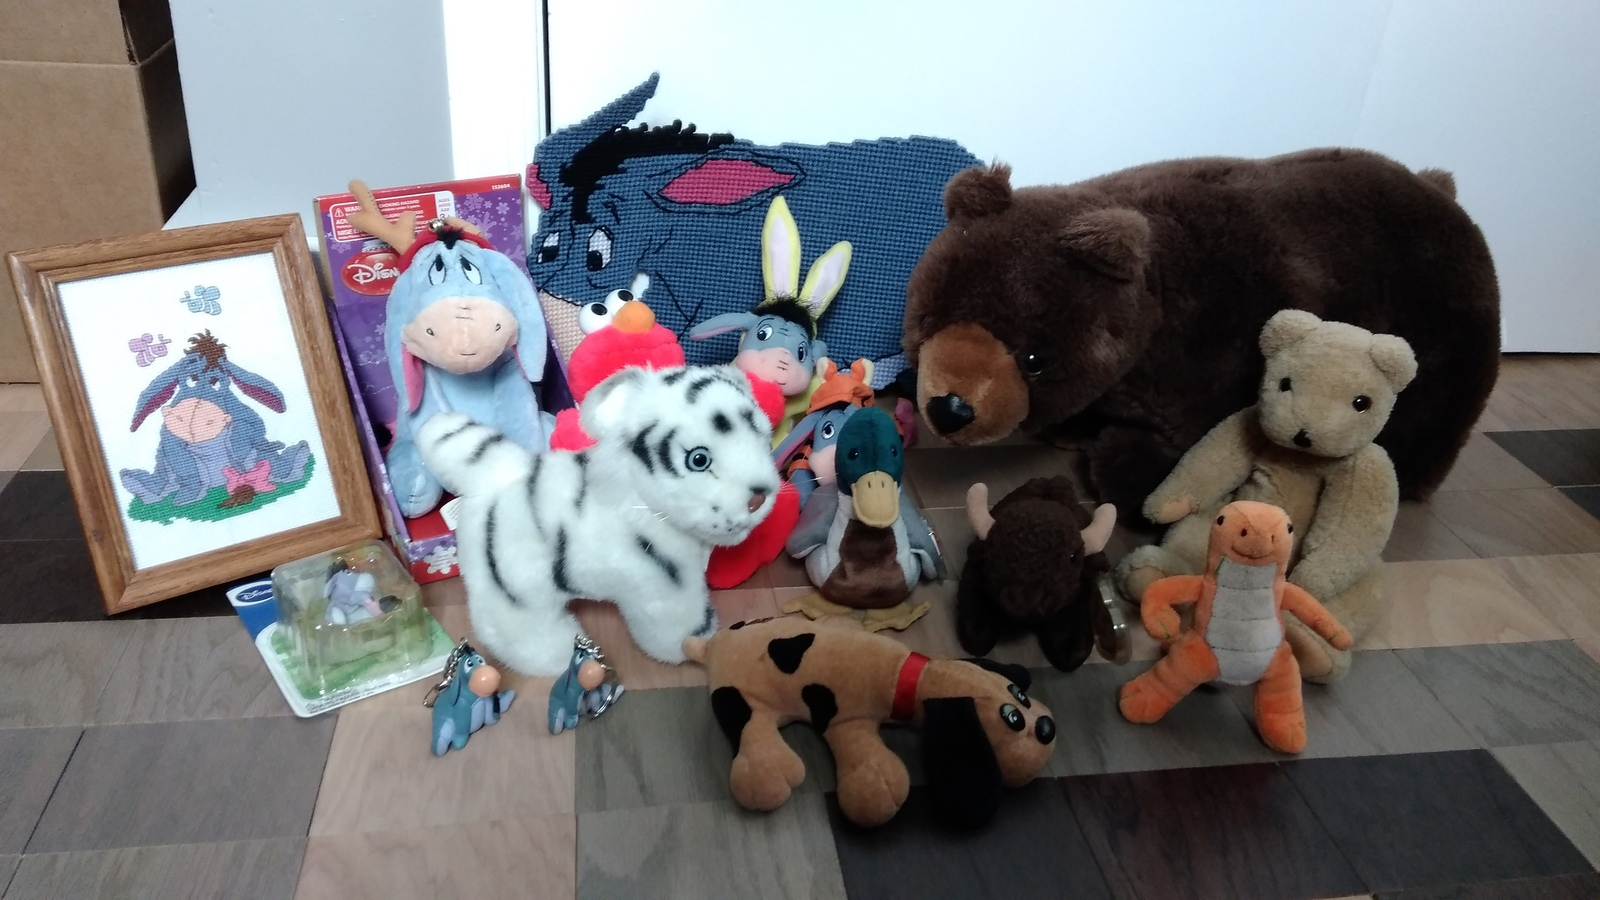 Eeyore and friends stuff animals 15 pcs - $35.00